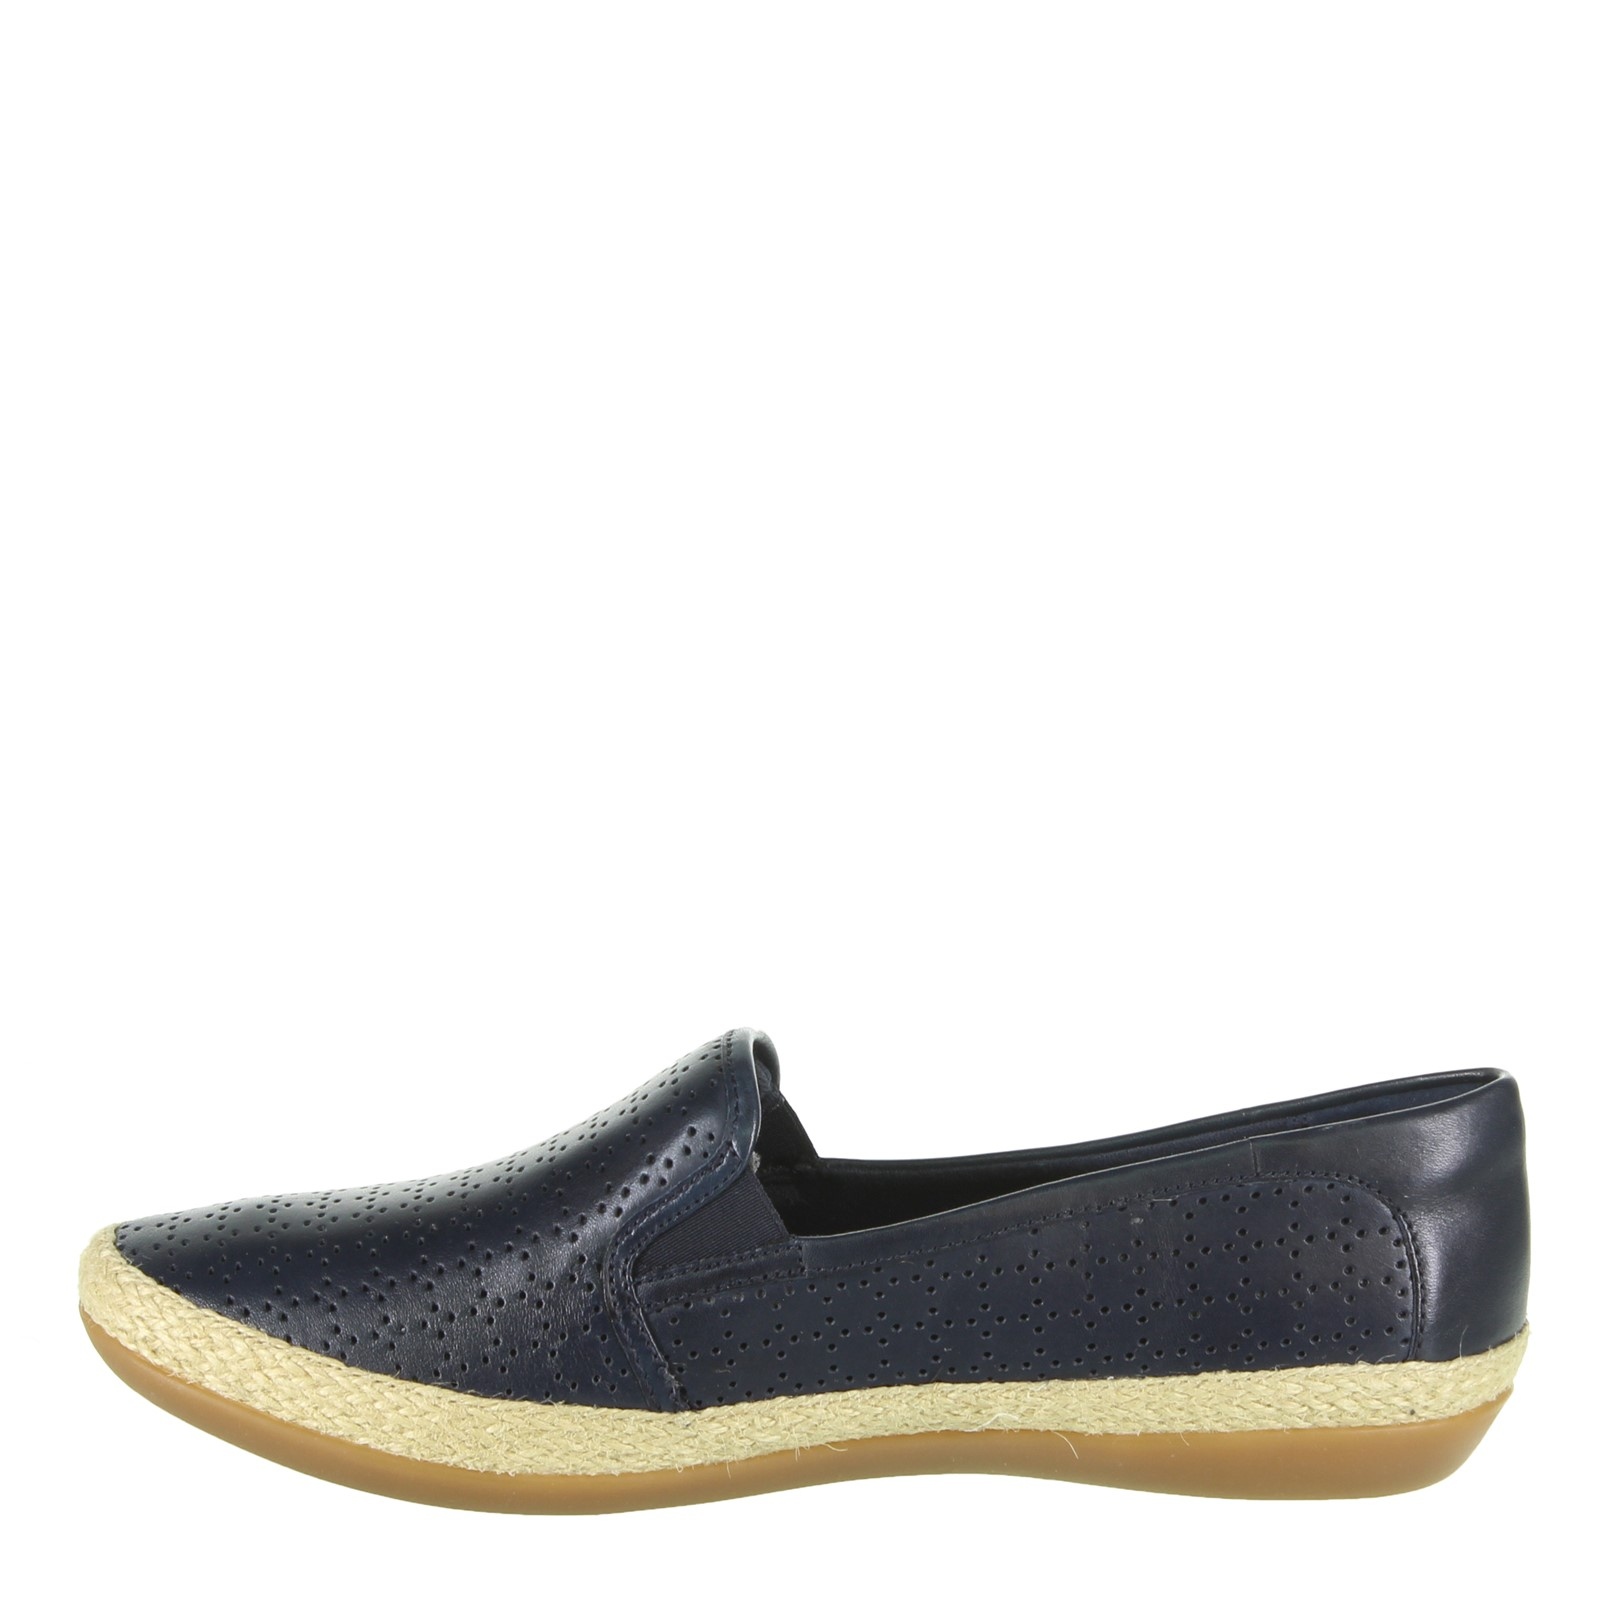 2267e80ce5d6 ... Danelly Molly Slip on Shoes. Previous. default view · 2 · 3 ...